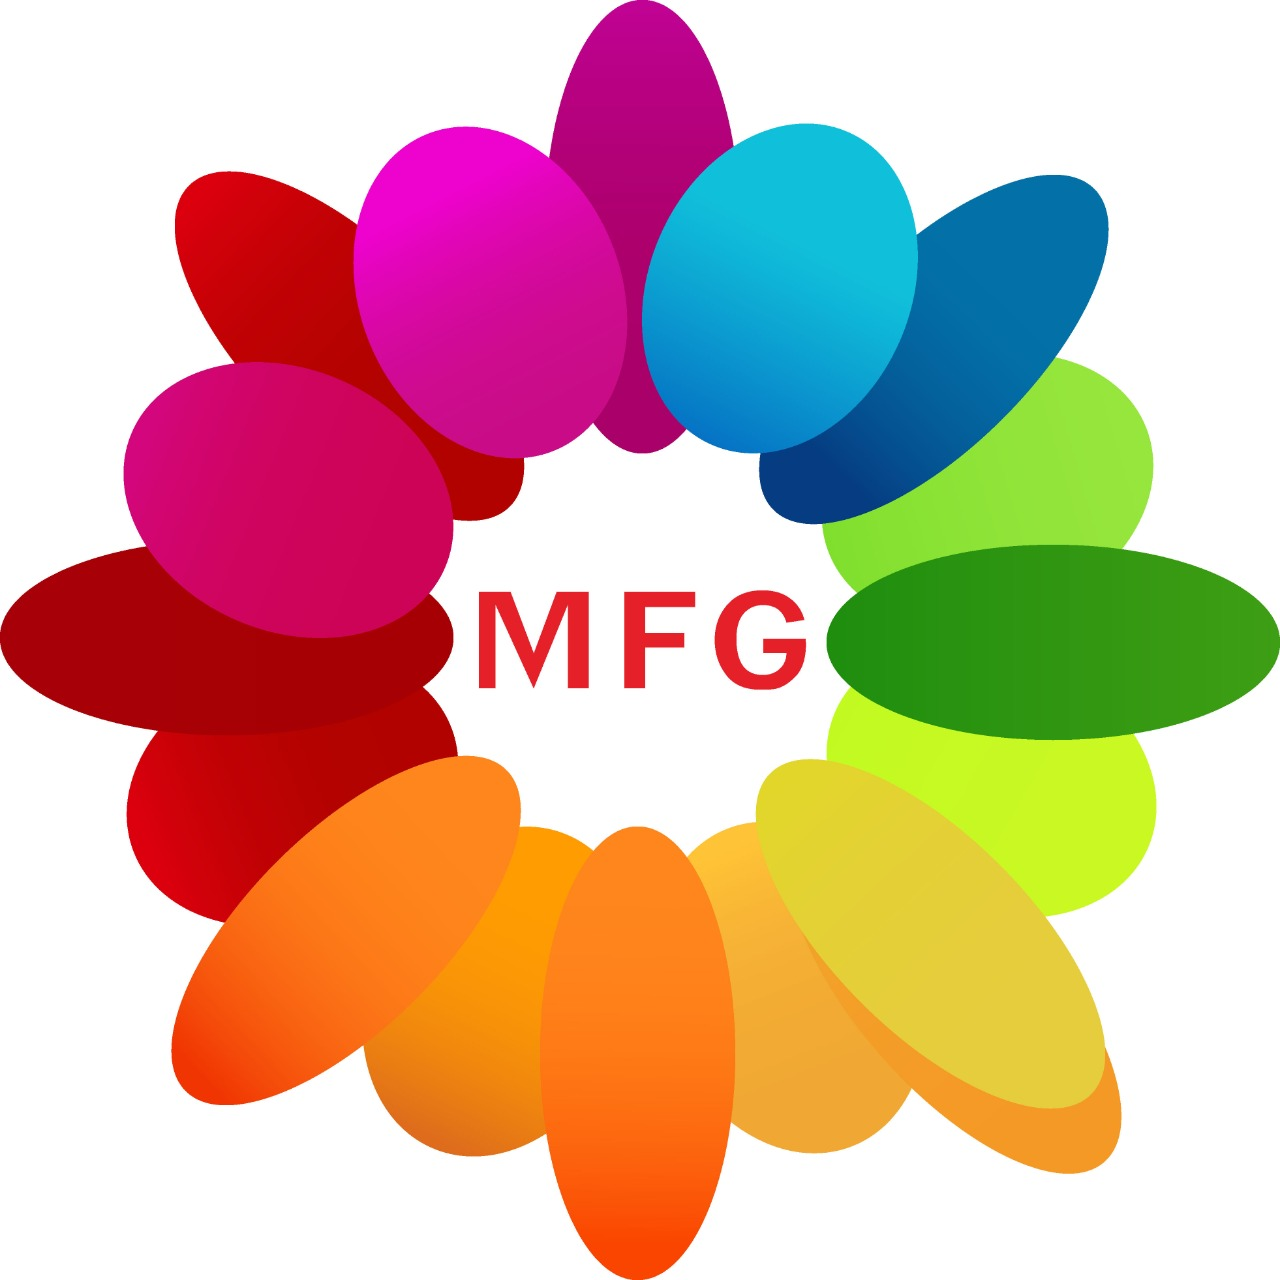 Bunch of 20 red roses with box of 16 pcs rocher ferrero chocolates